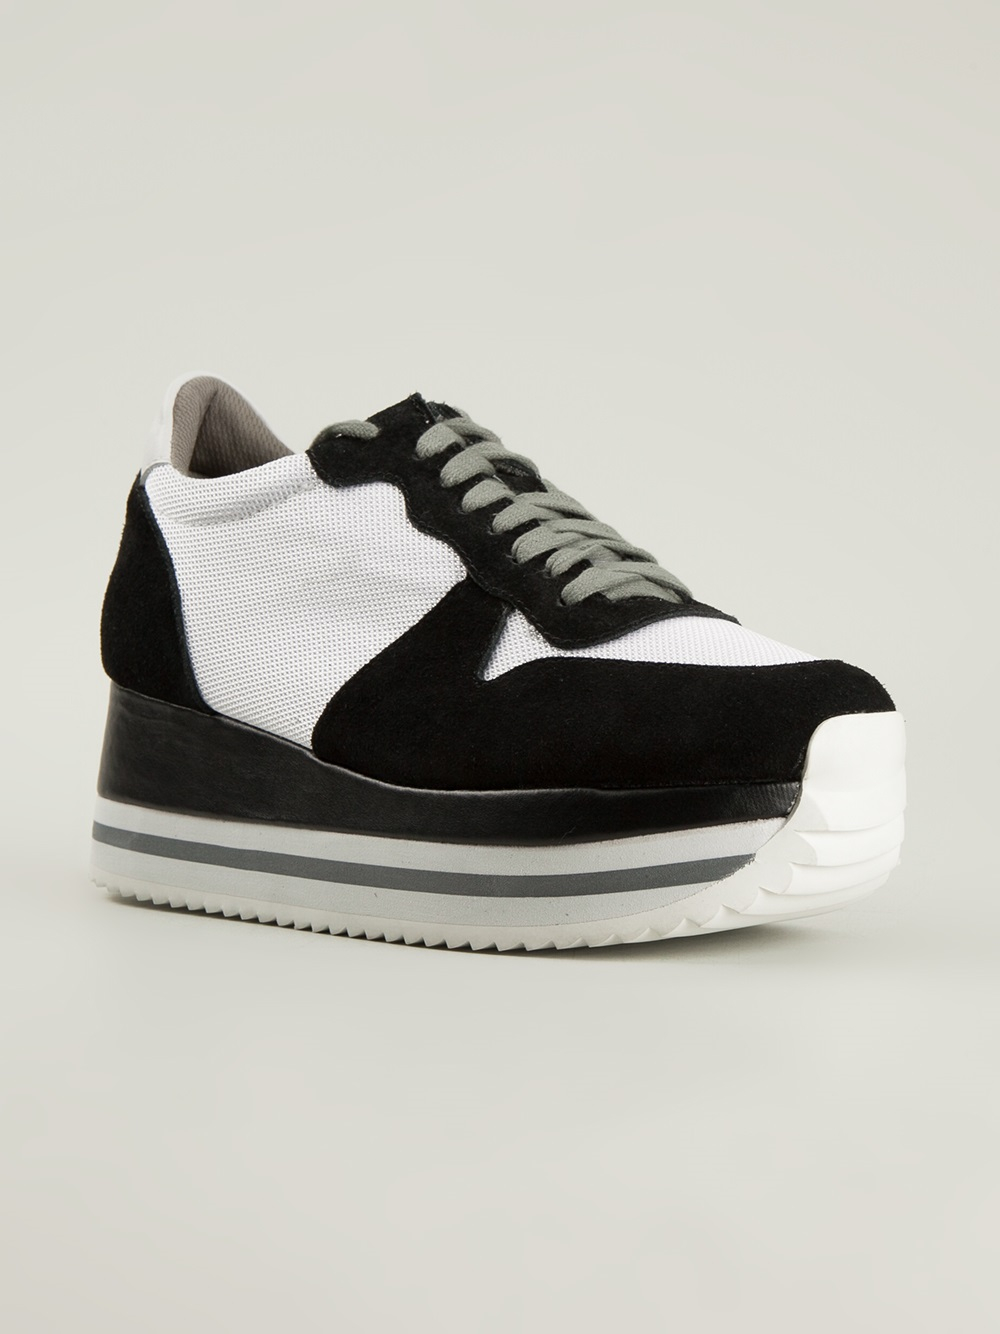 074fd0fbad24 Lyst - Jeffrey Campbell Turbo Sneakers in Black